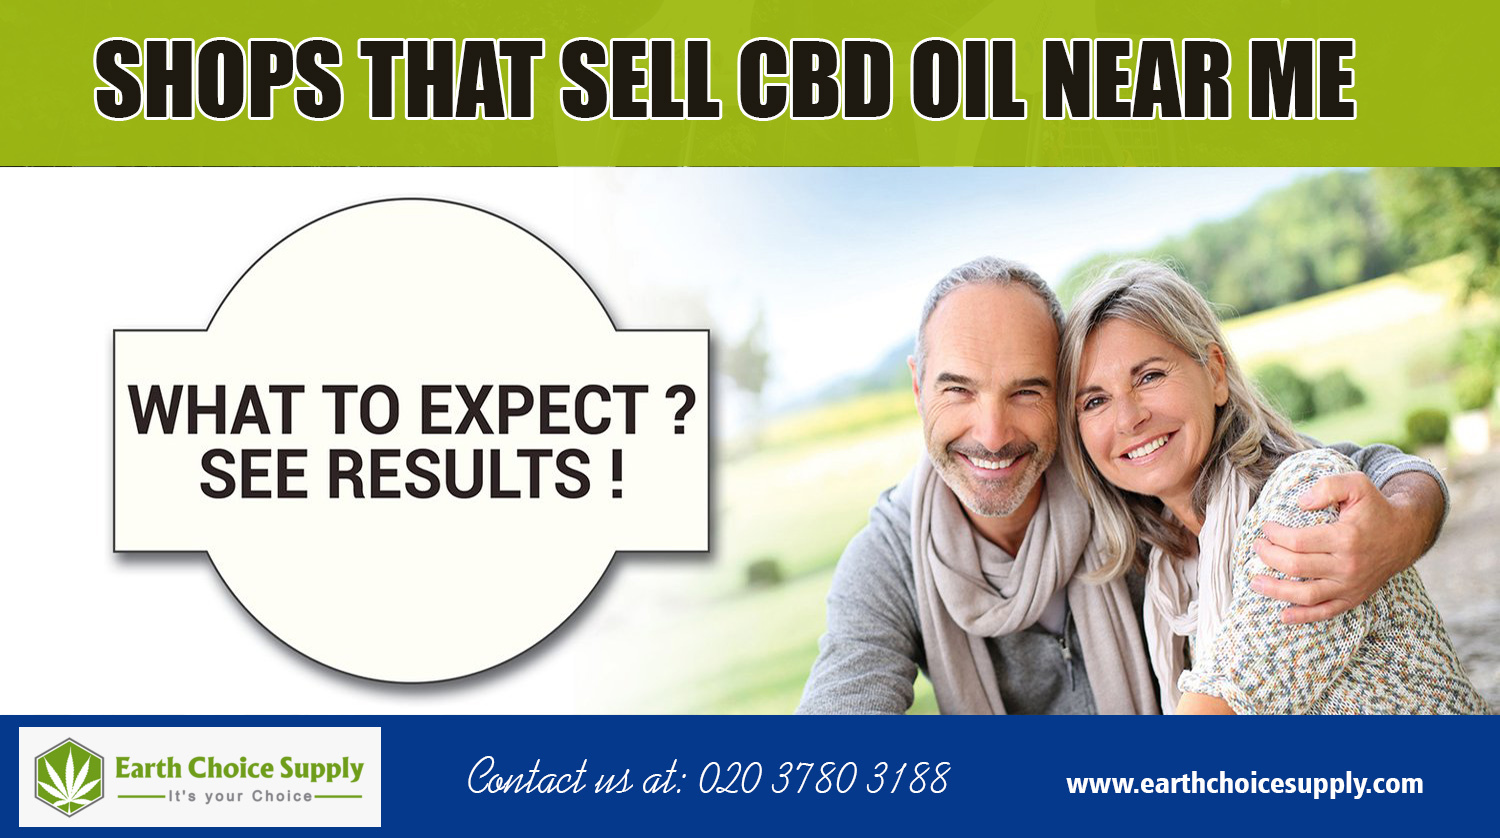 Shops that sell cbd oil near me | Call Us - 416-922-7238 | earthchoicesupply.com